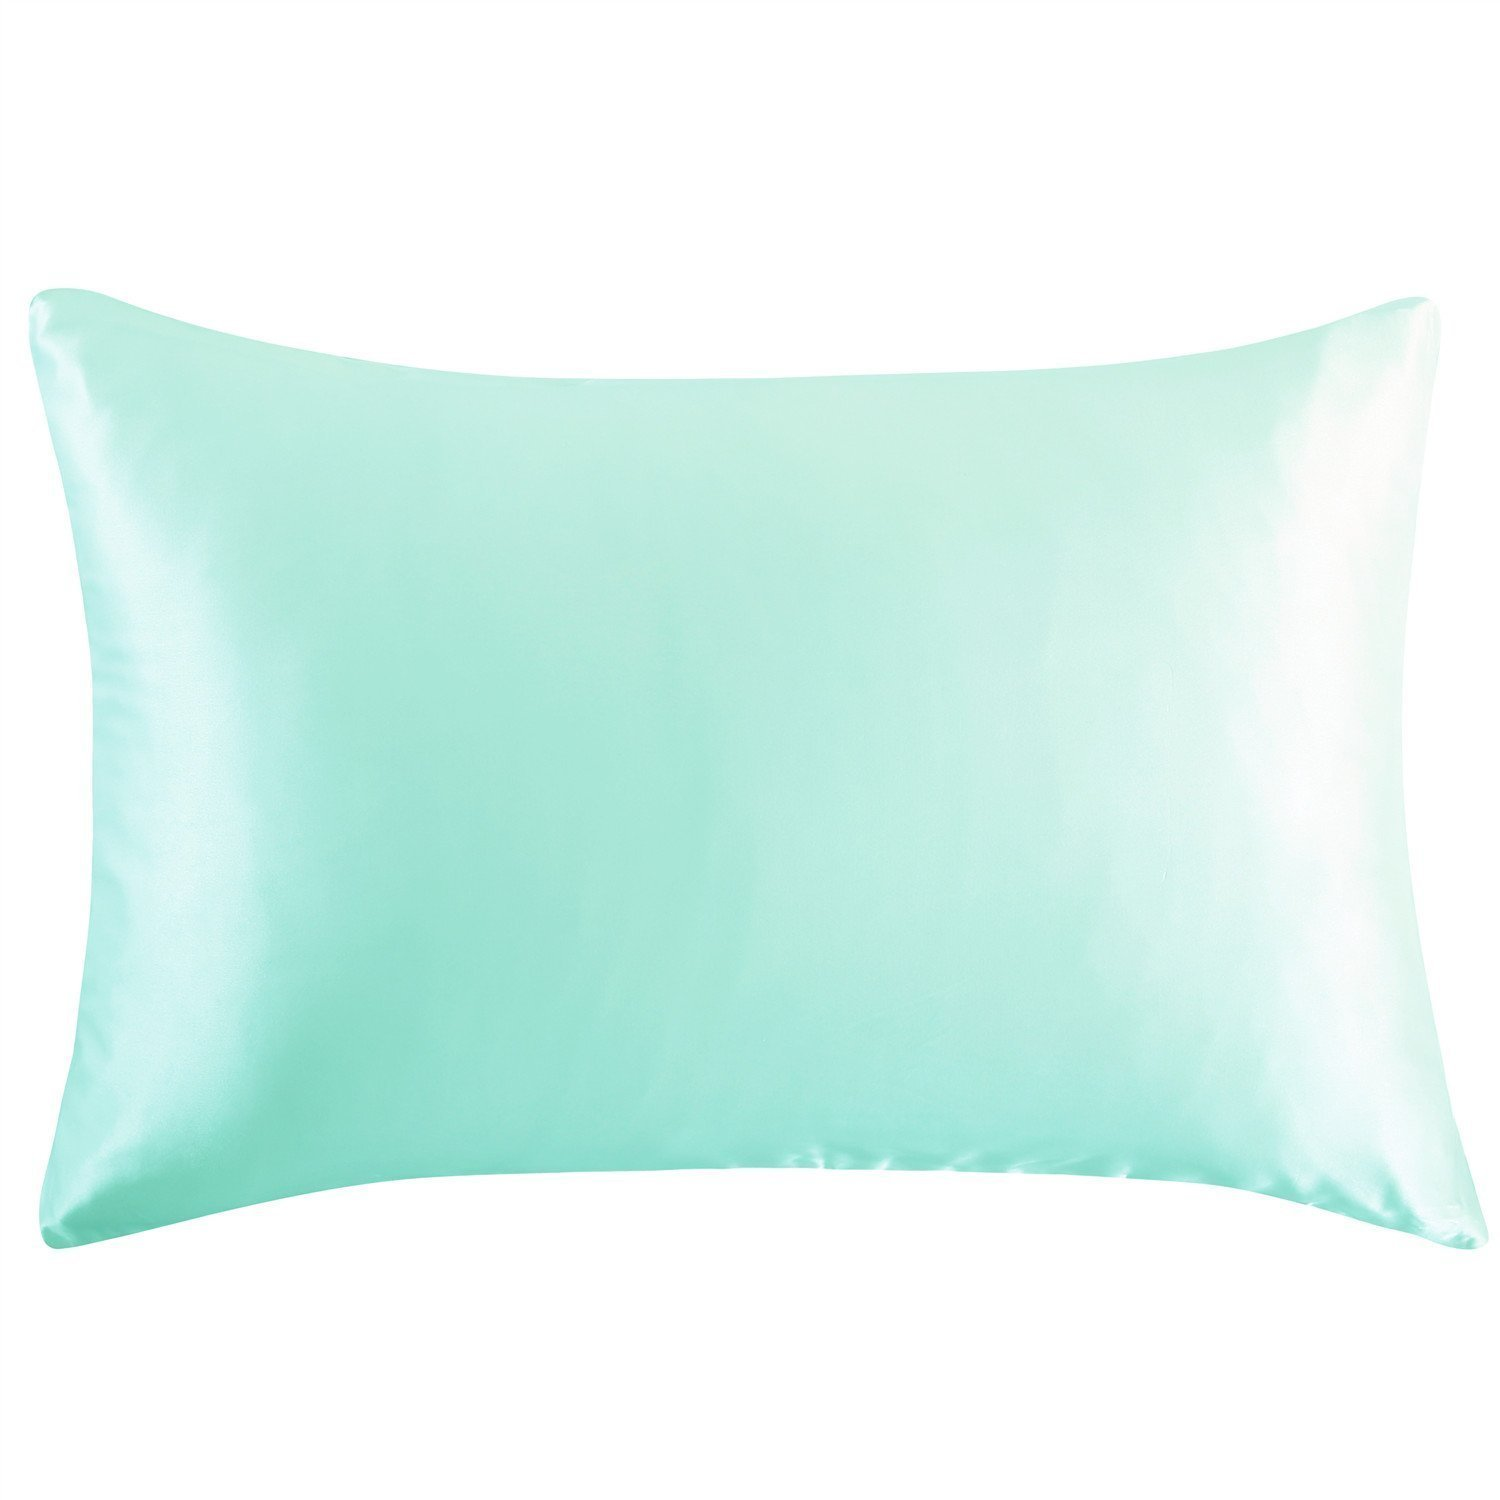 OOSILK Mulberry Silk Pillowcase with Hidden Zipper